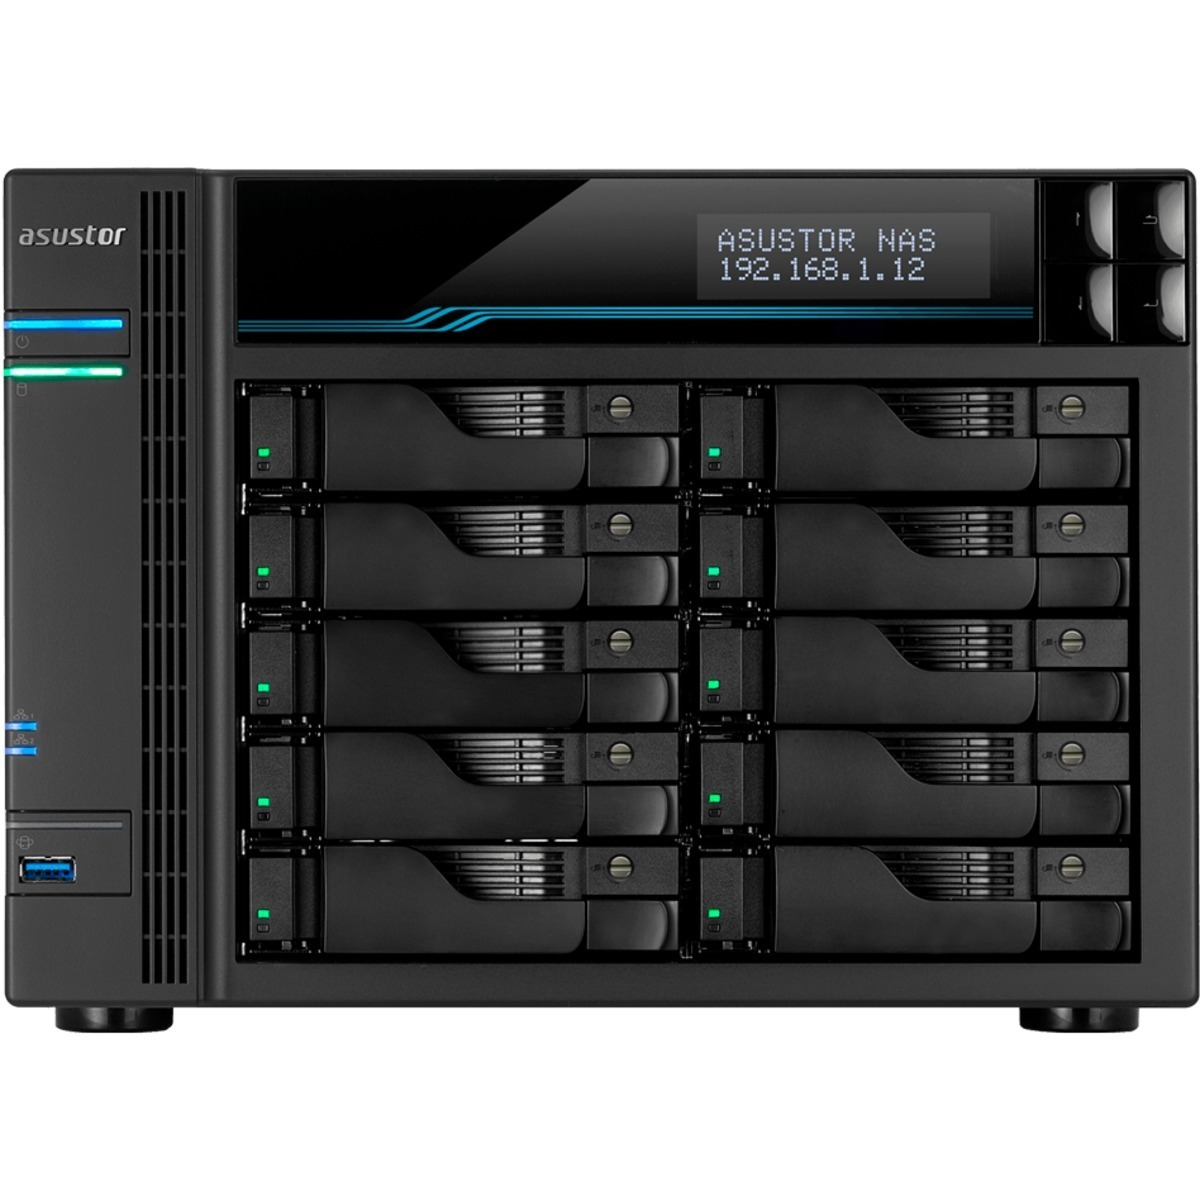 buy $3303 ASUSTOR AS6510T Lockerstor 10 60tb Desktop NAS - Network Attached Storage Device 10x6000gb Western Digital Red WD60EFAX 3.5 IntelliPower SATA 6Gb/s HDD NAS Class Drives Installed - Burn-In Tested - nas headquarters buy network attached storage server device das new raid-5 free shipping usa spring inventory clearance sale happening now AS6510T Lockerstor 10